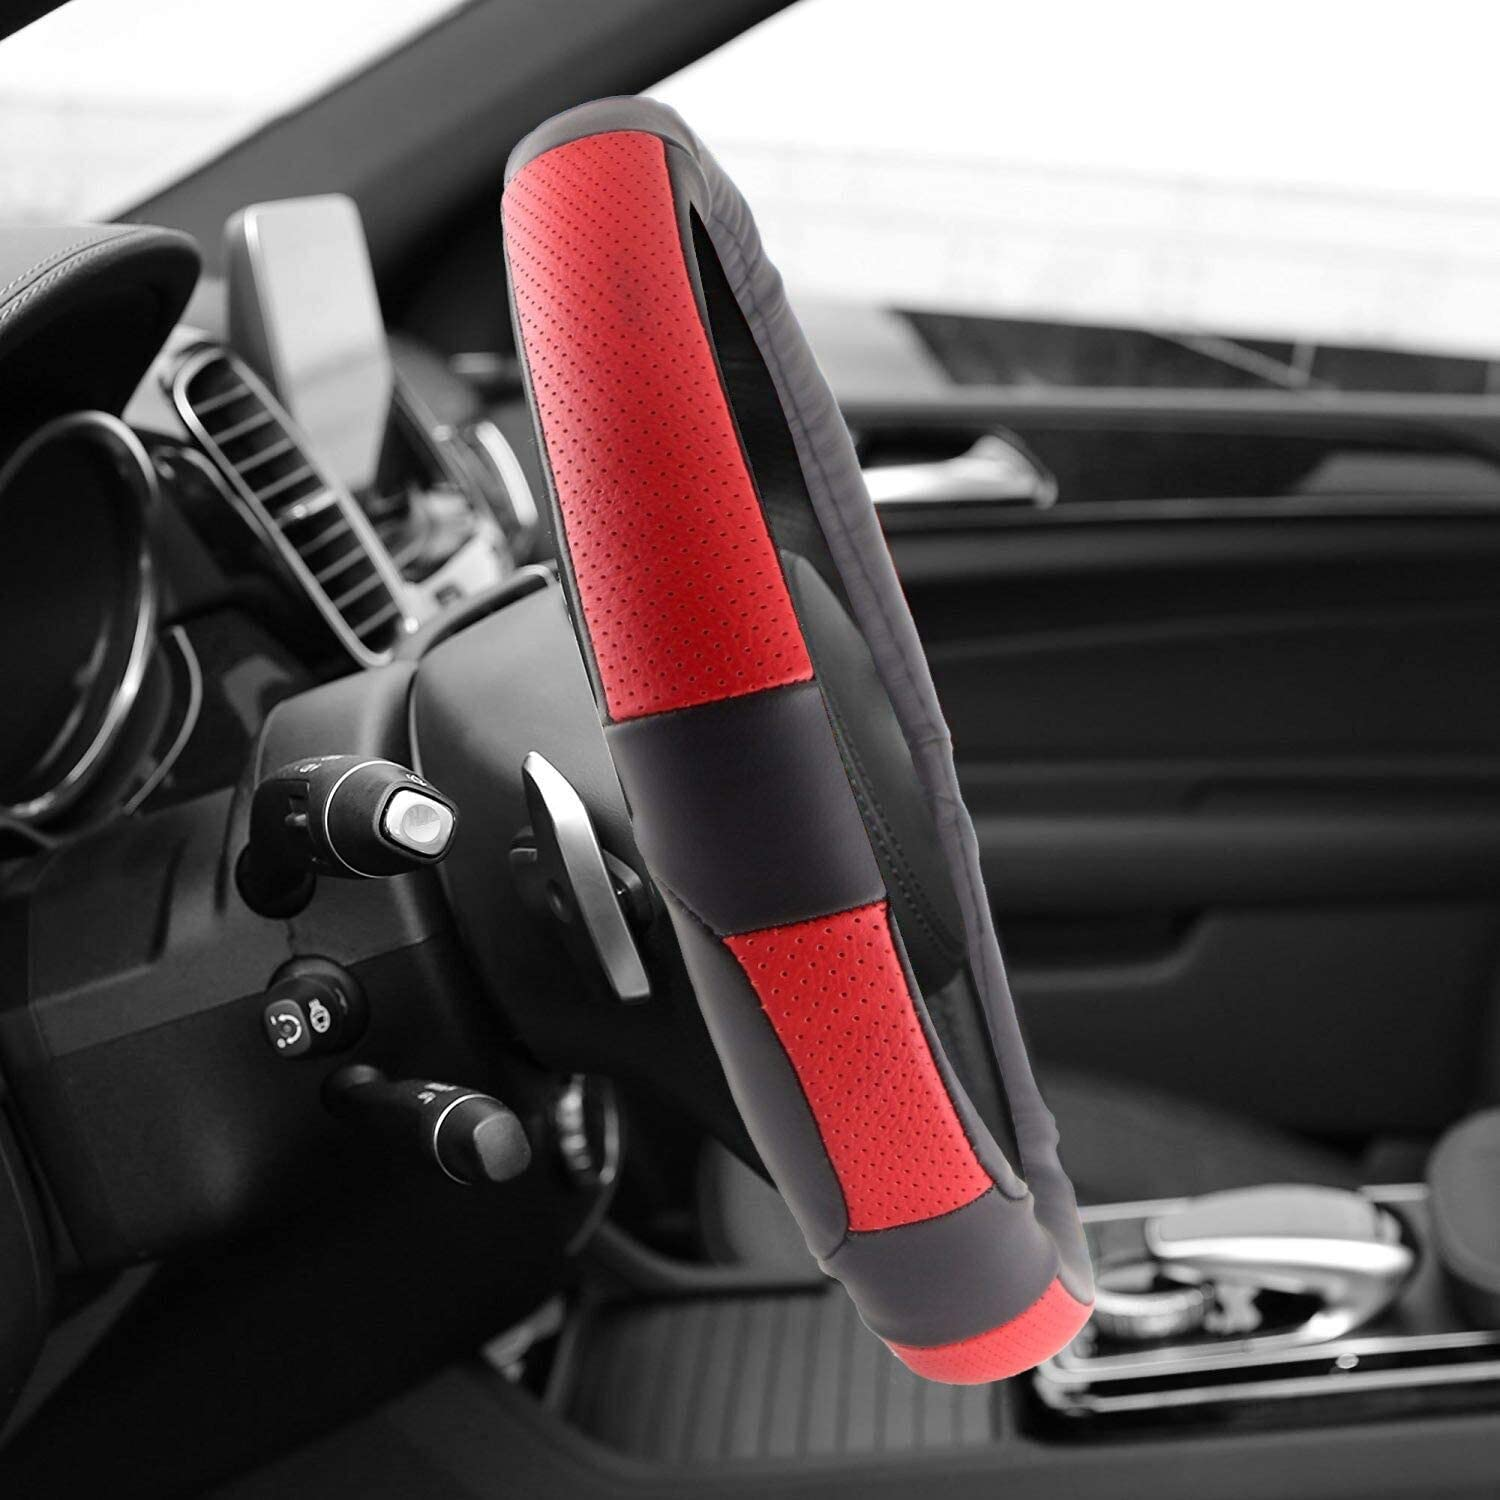 Breathable Black and Red Universal Fit Spurtar Genuine Leather Steering Wheel Cover for 14 1//2 to 15 inch Auto Car Truck SUV Van Anti-Slip Grip Odor Free